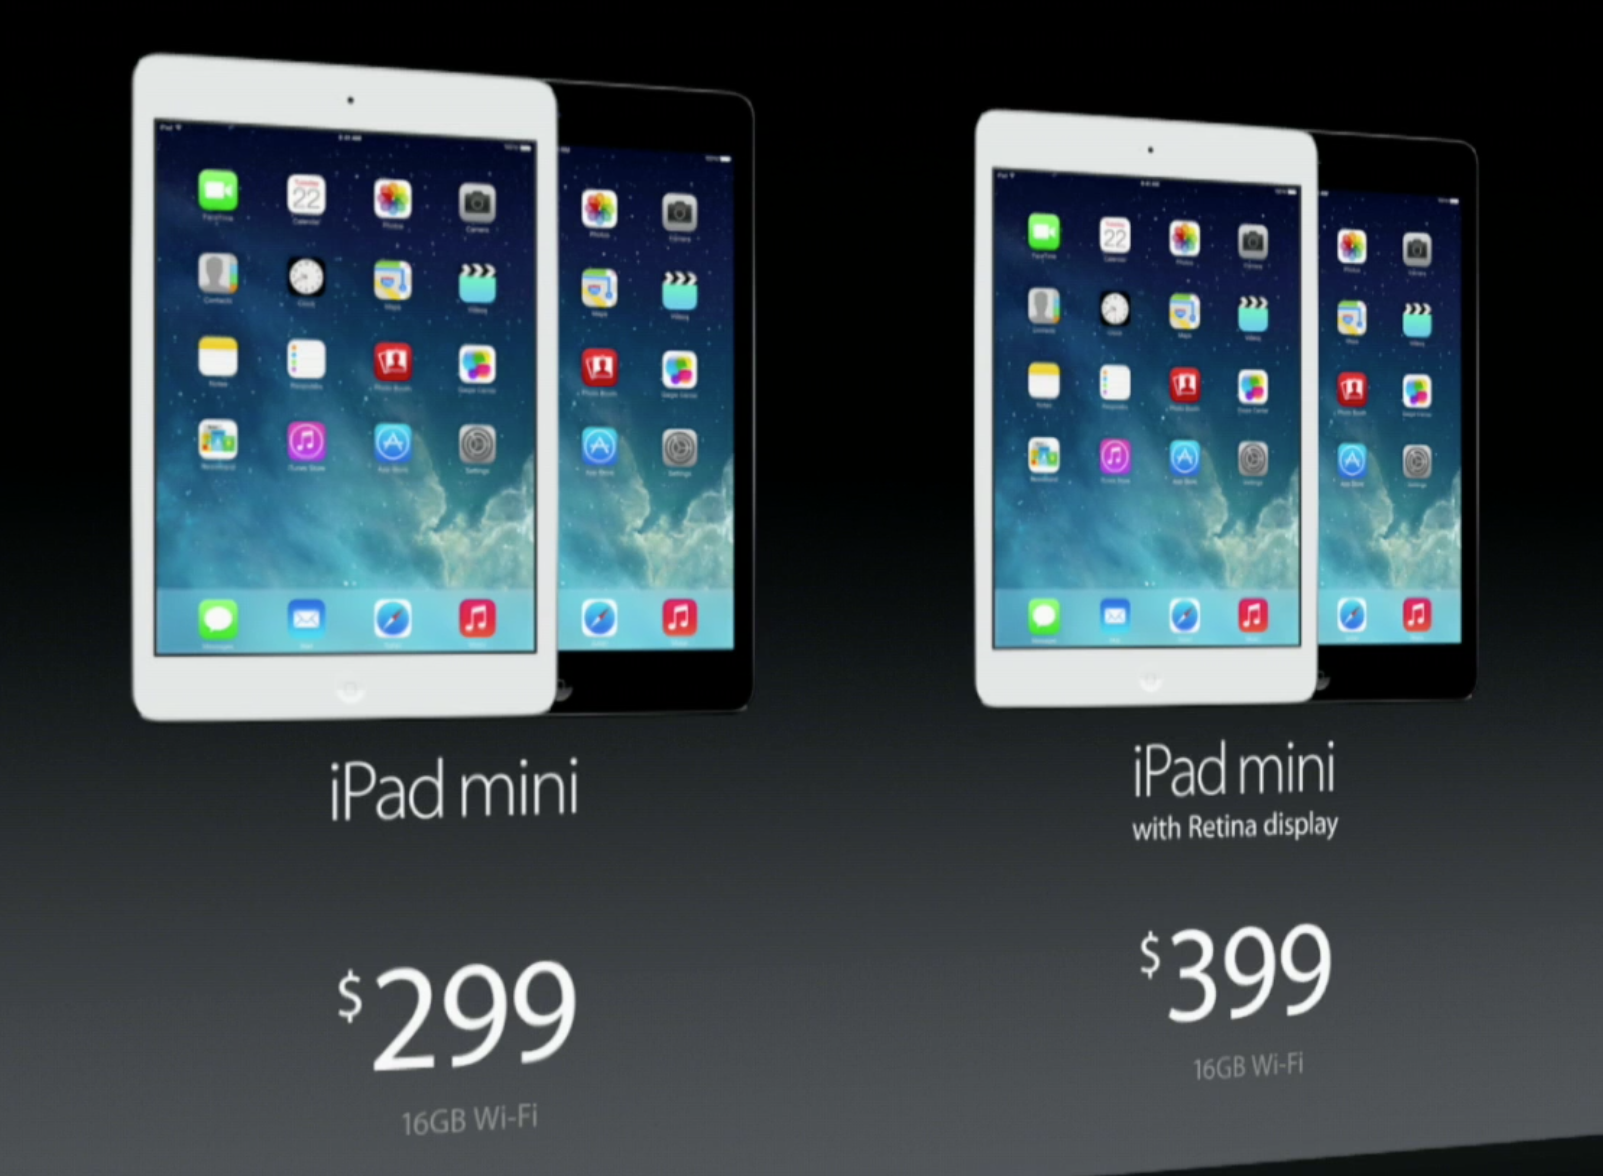 The iPad mini price is cheaper, and Apple is offering a refund.